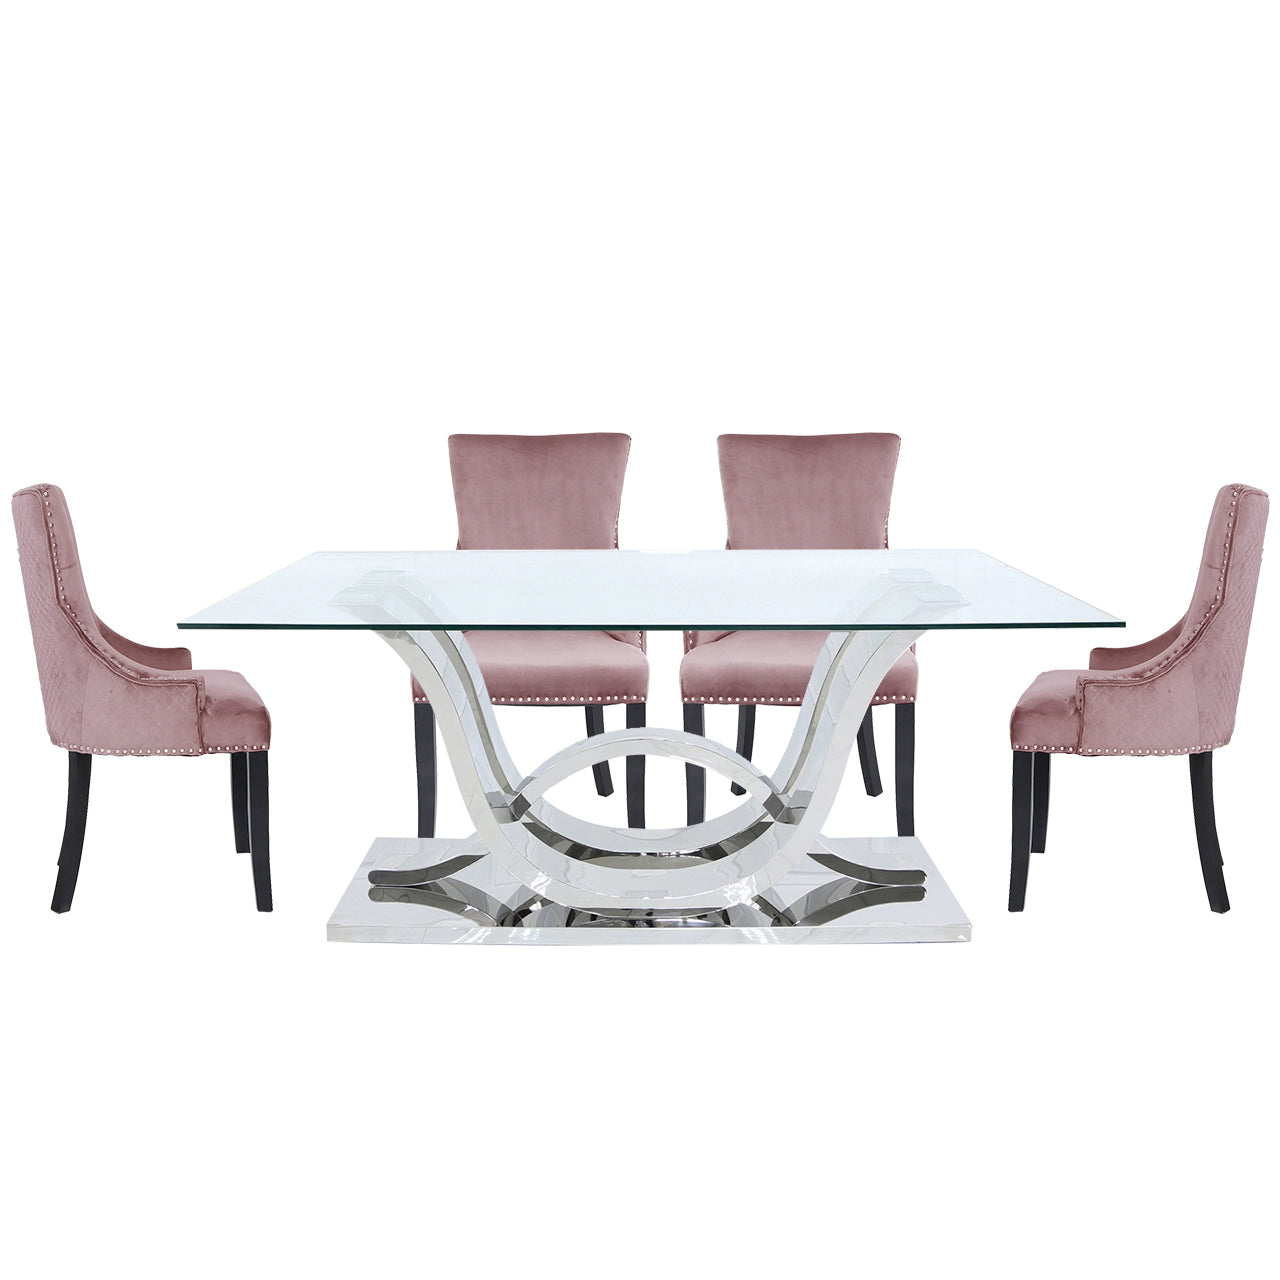 Carvelle Dining Set With 6 Pink Chairs